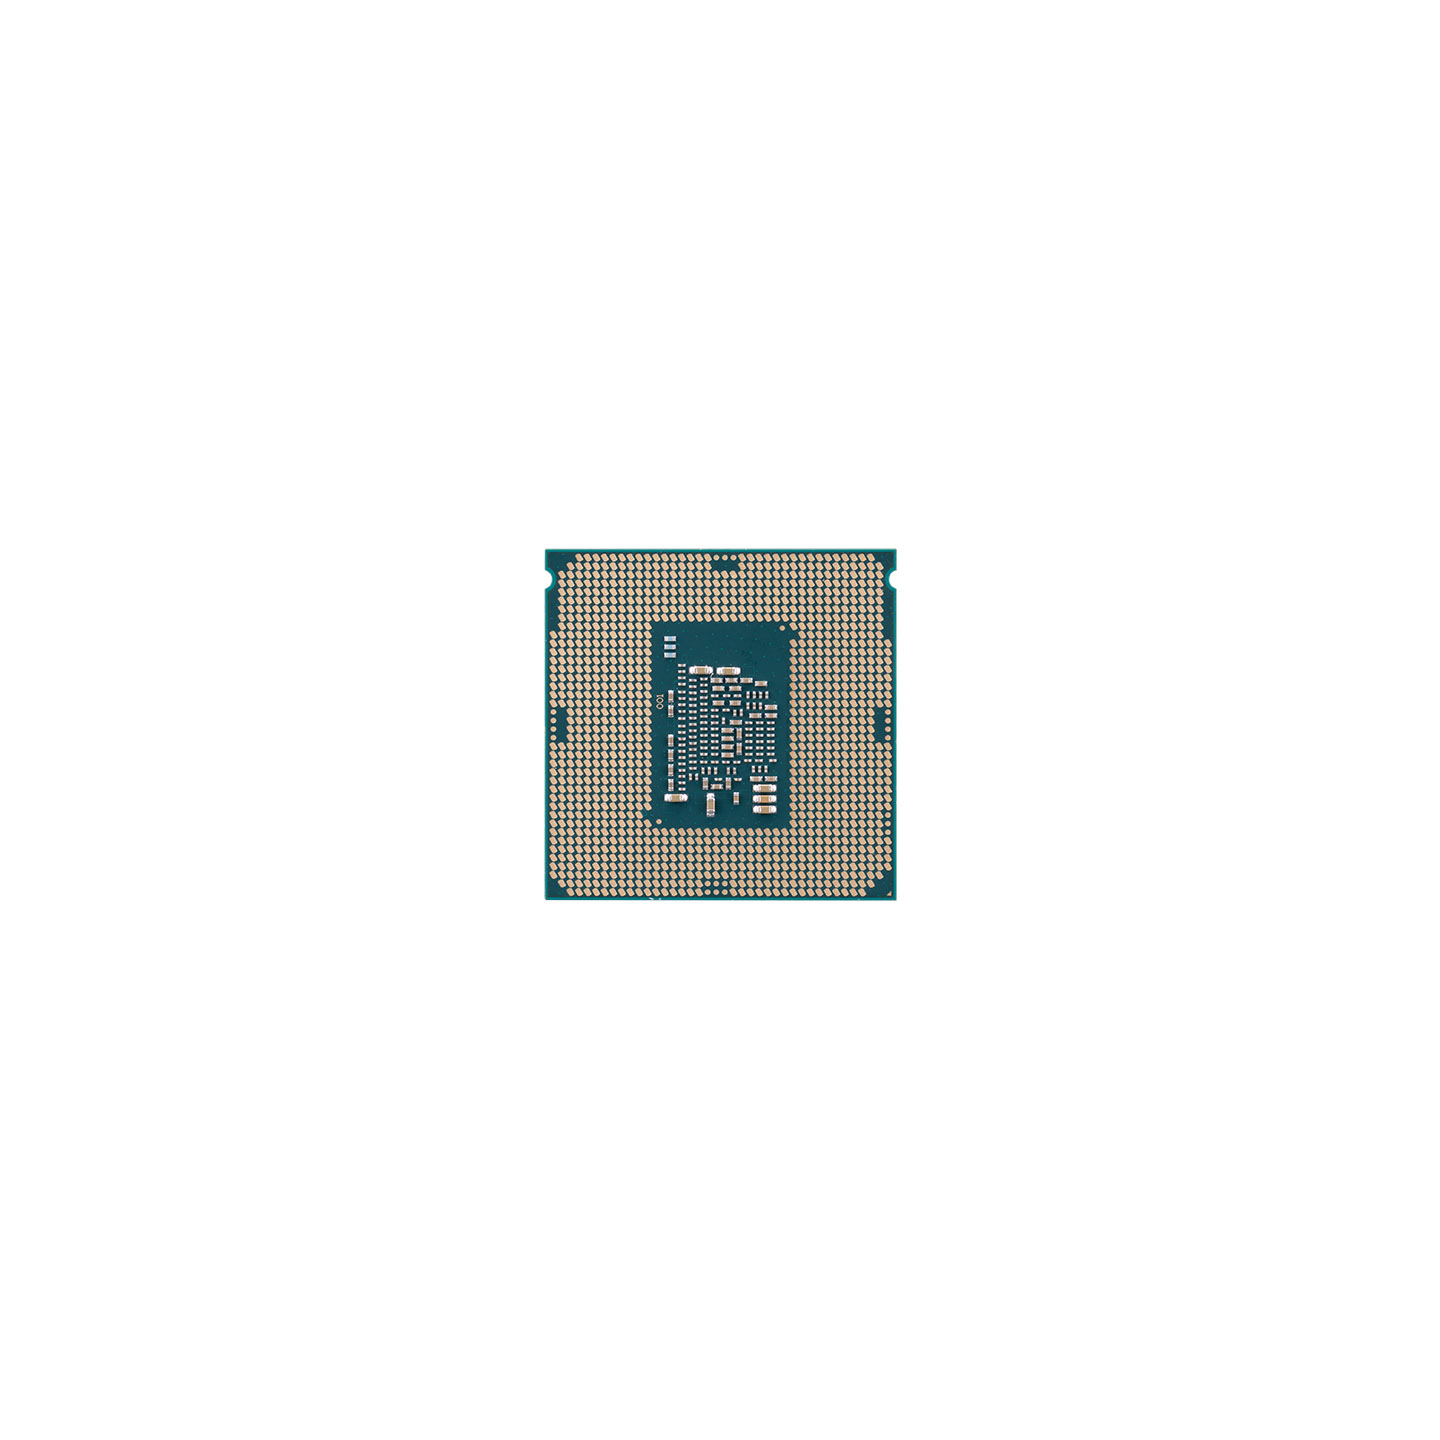 Intel Celeron G3900 2.8GHz Skylake 2MB Socket 1151-tray CPU İşlemci